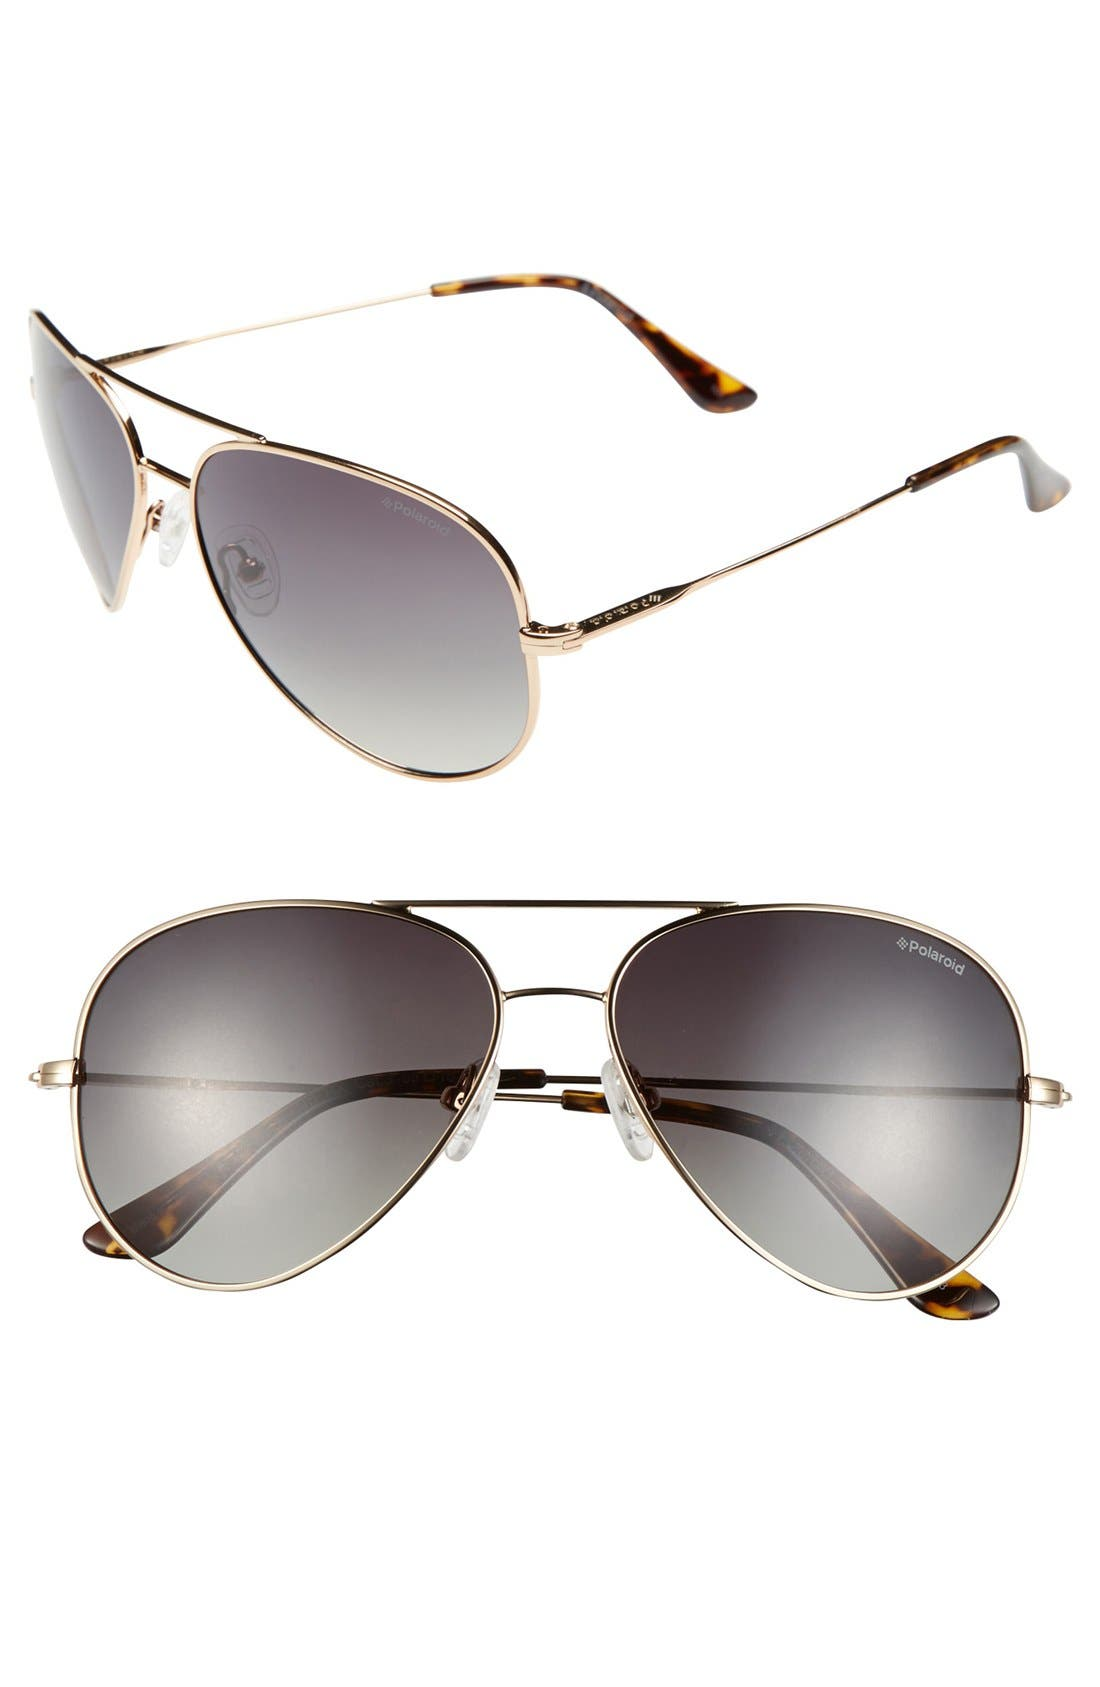 Alternate Image 1 Selected - Polaroid Eyewear 59mm Polarized Aviator Sunglasses